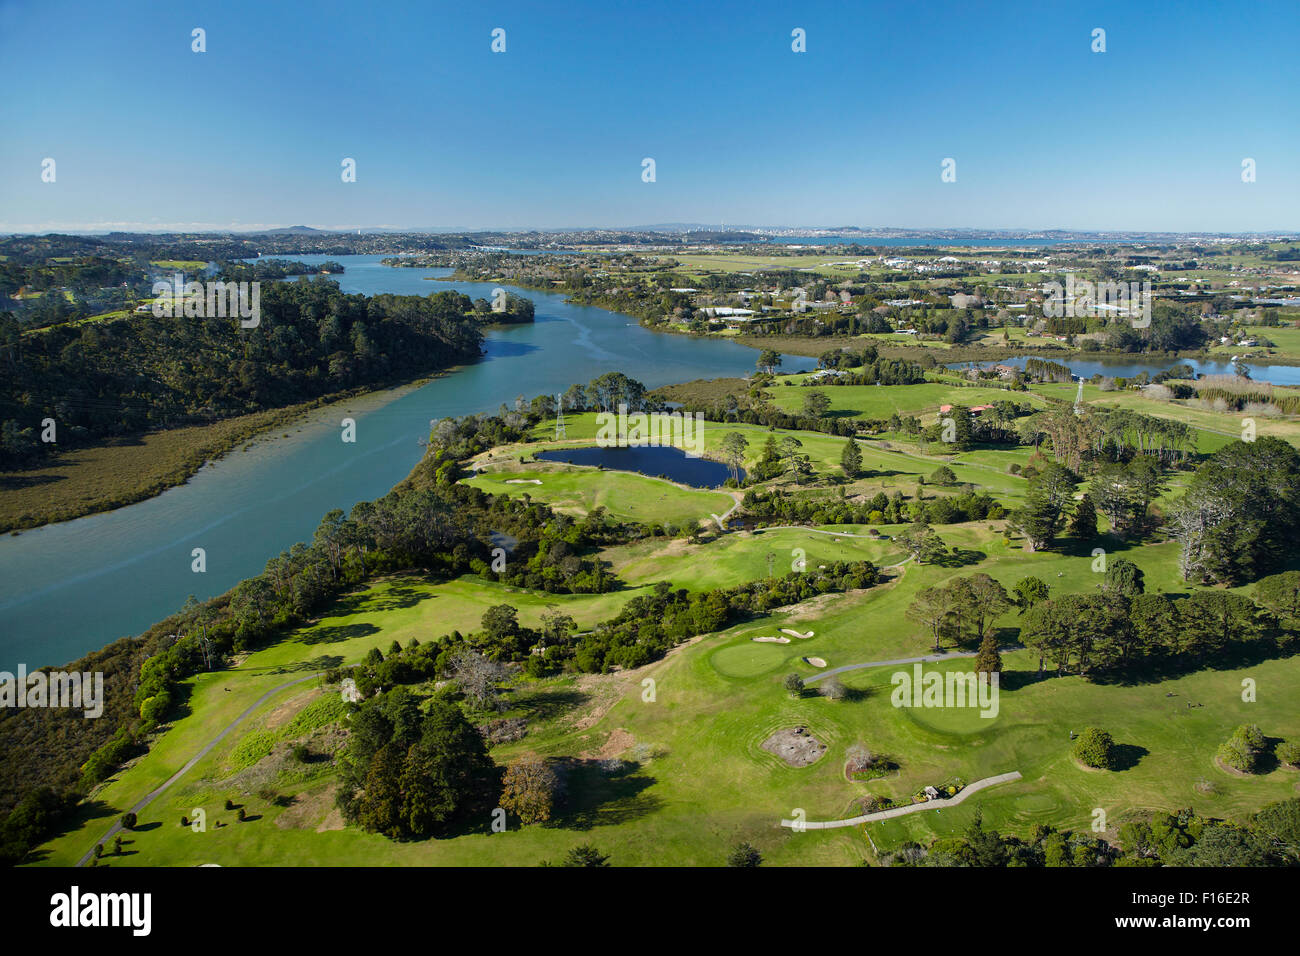 Rangitopuni Creek, and Huapai Golf Course, Riverhead, Auckland, North Island, New Zealand - aerial - Stock Image